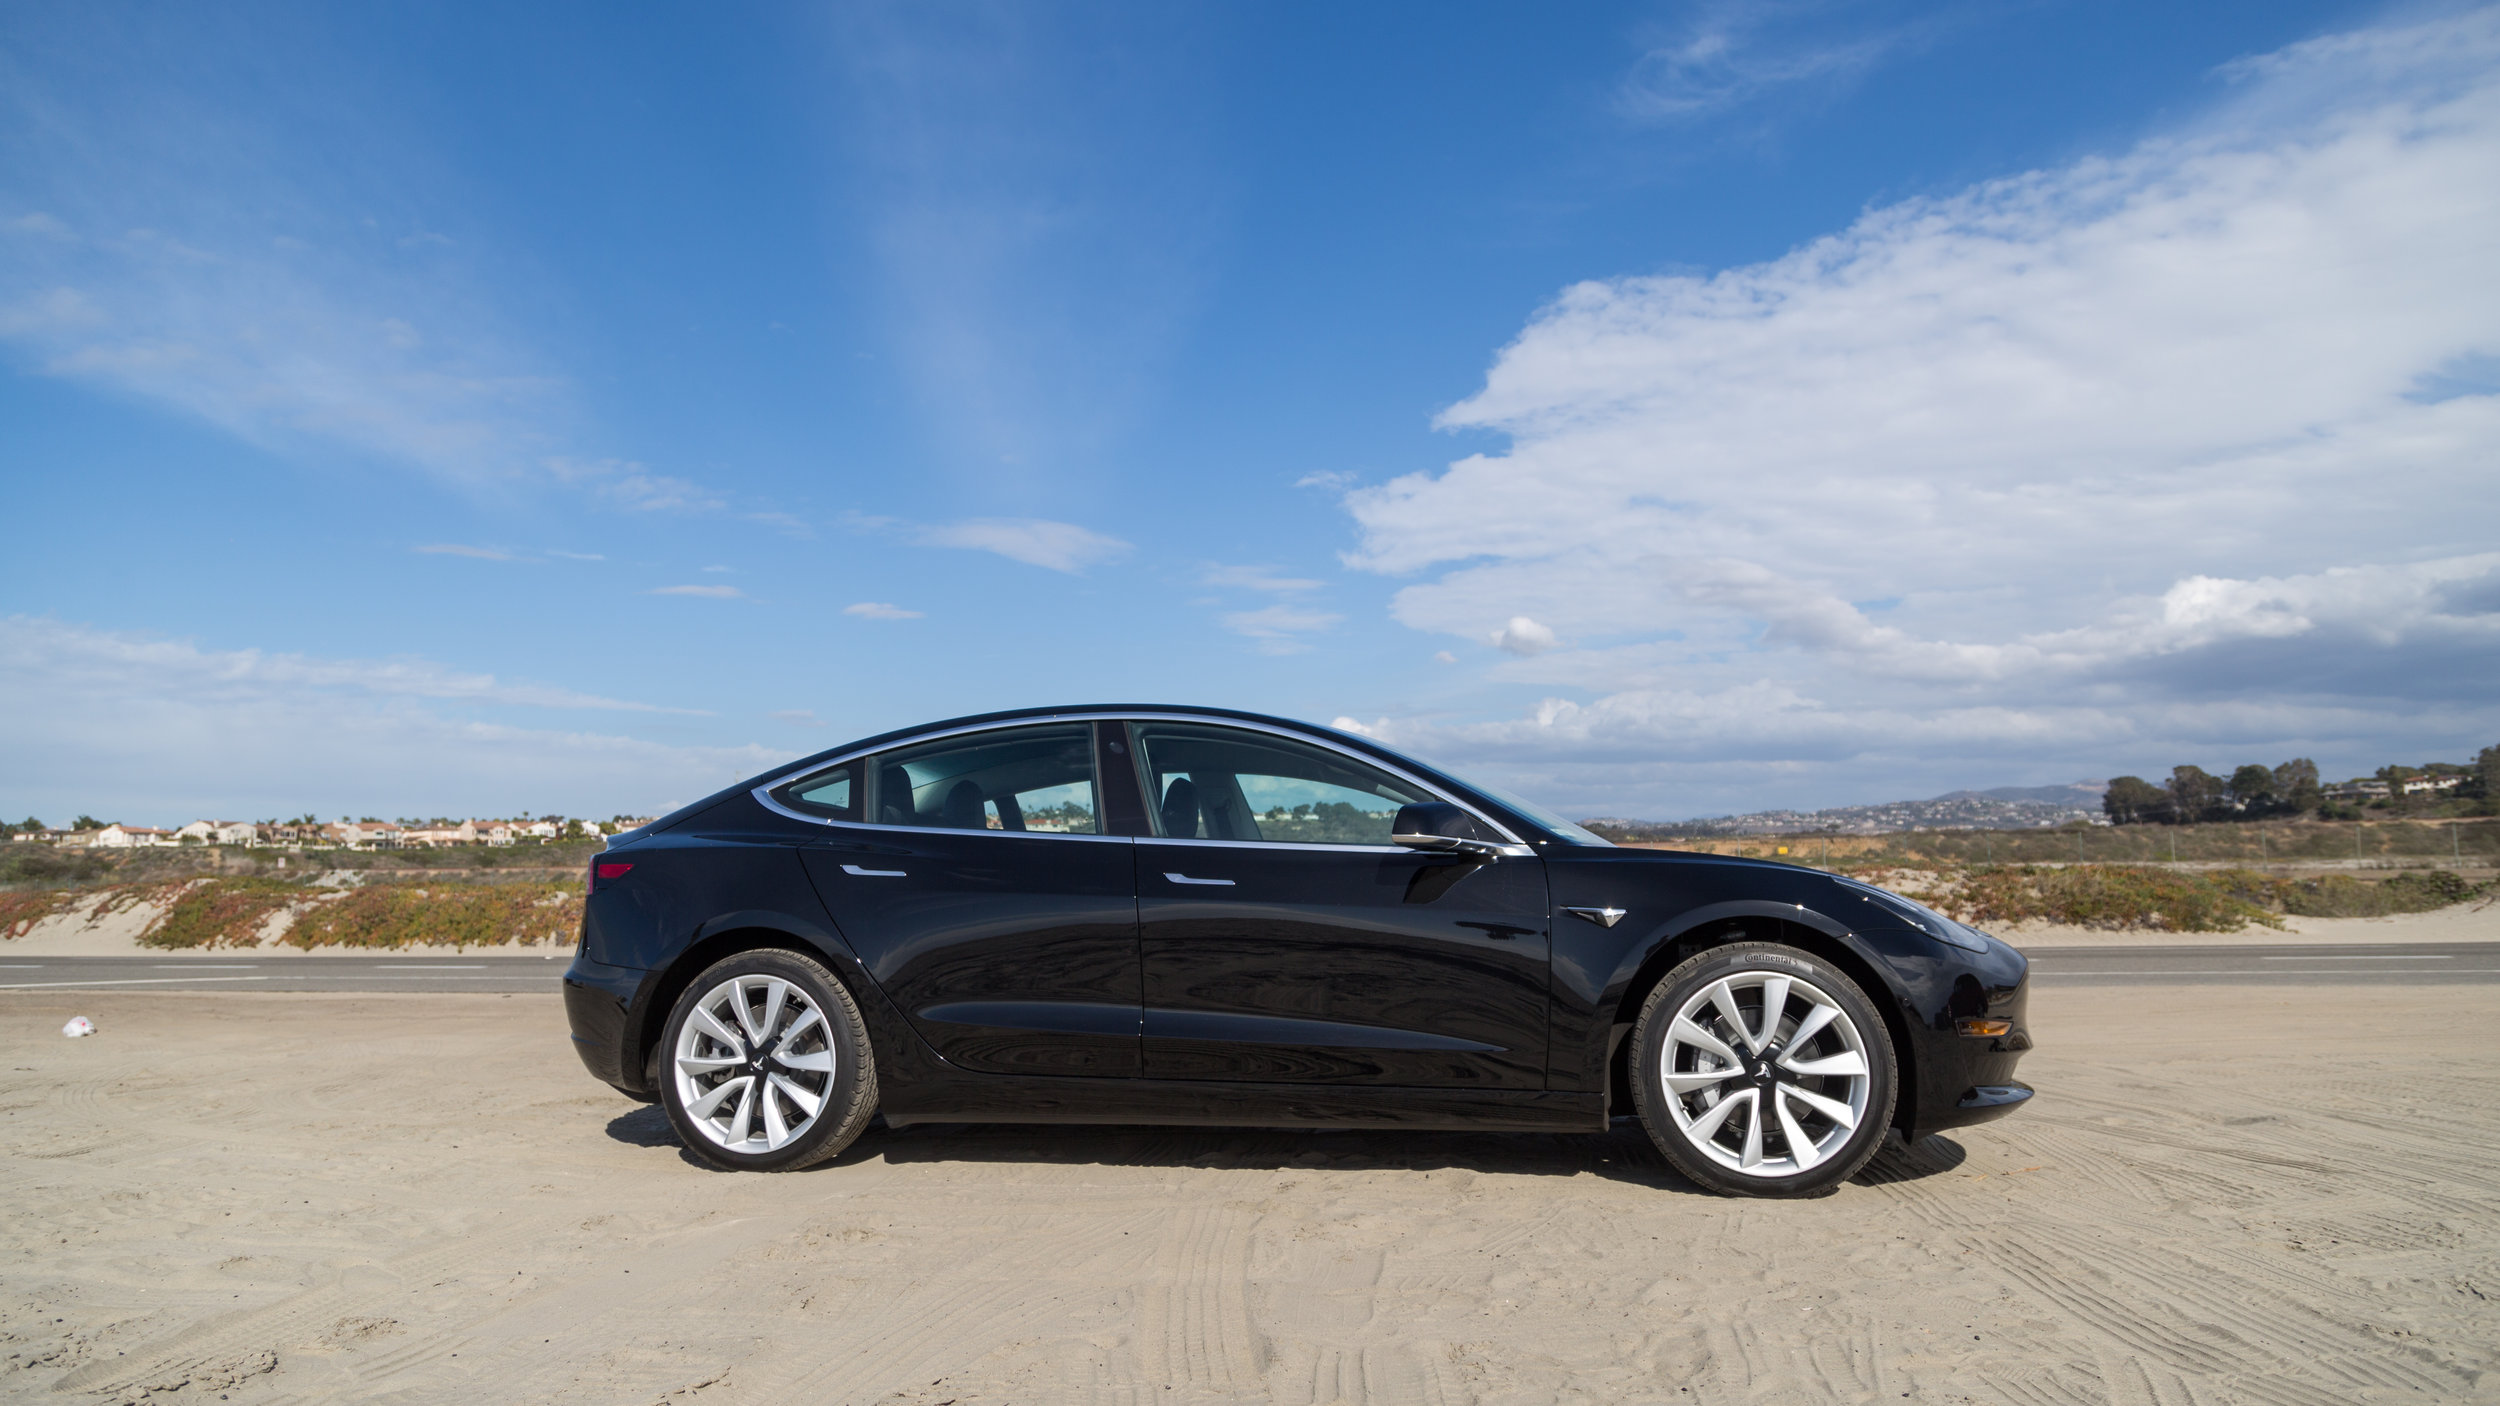 2018-02-20 Tesla Model 3 Review by Caleb Wojcik-14.jpg